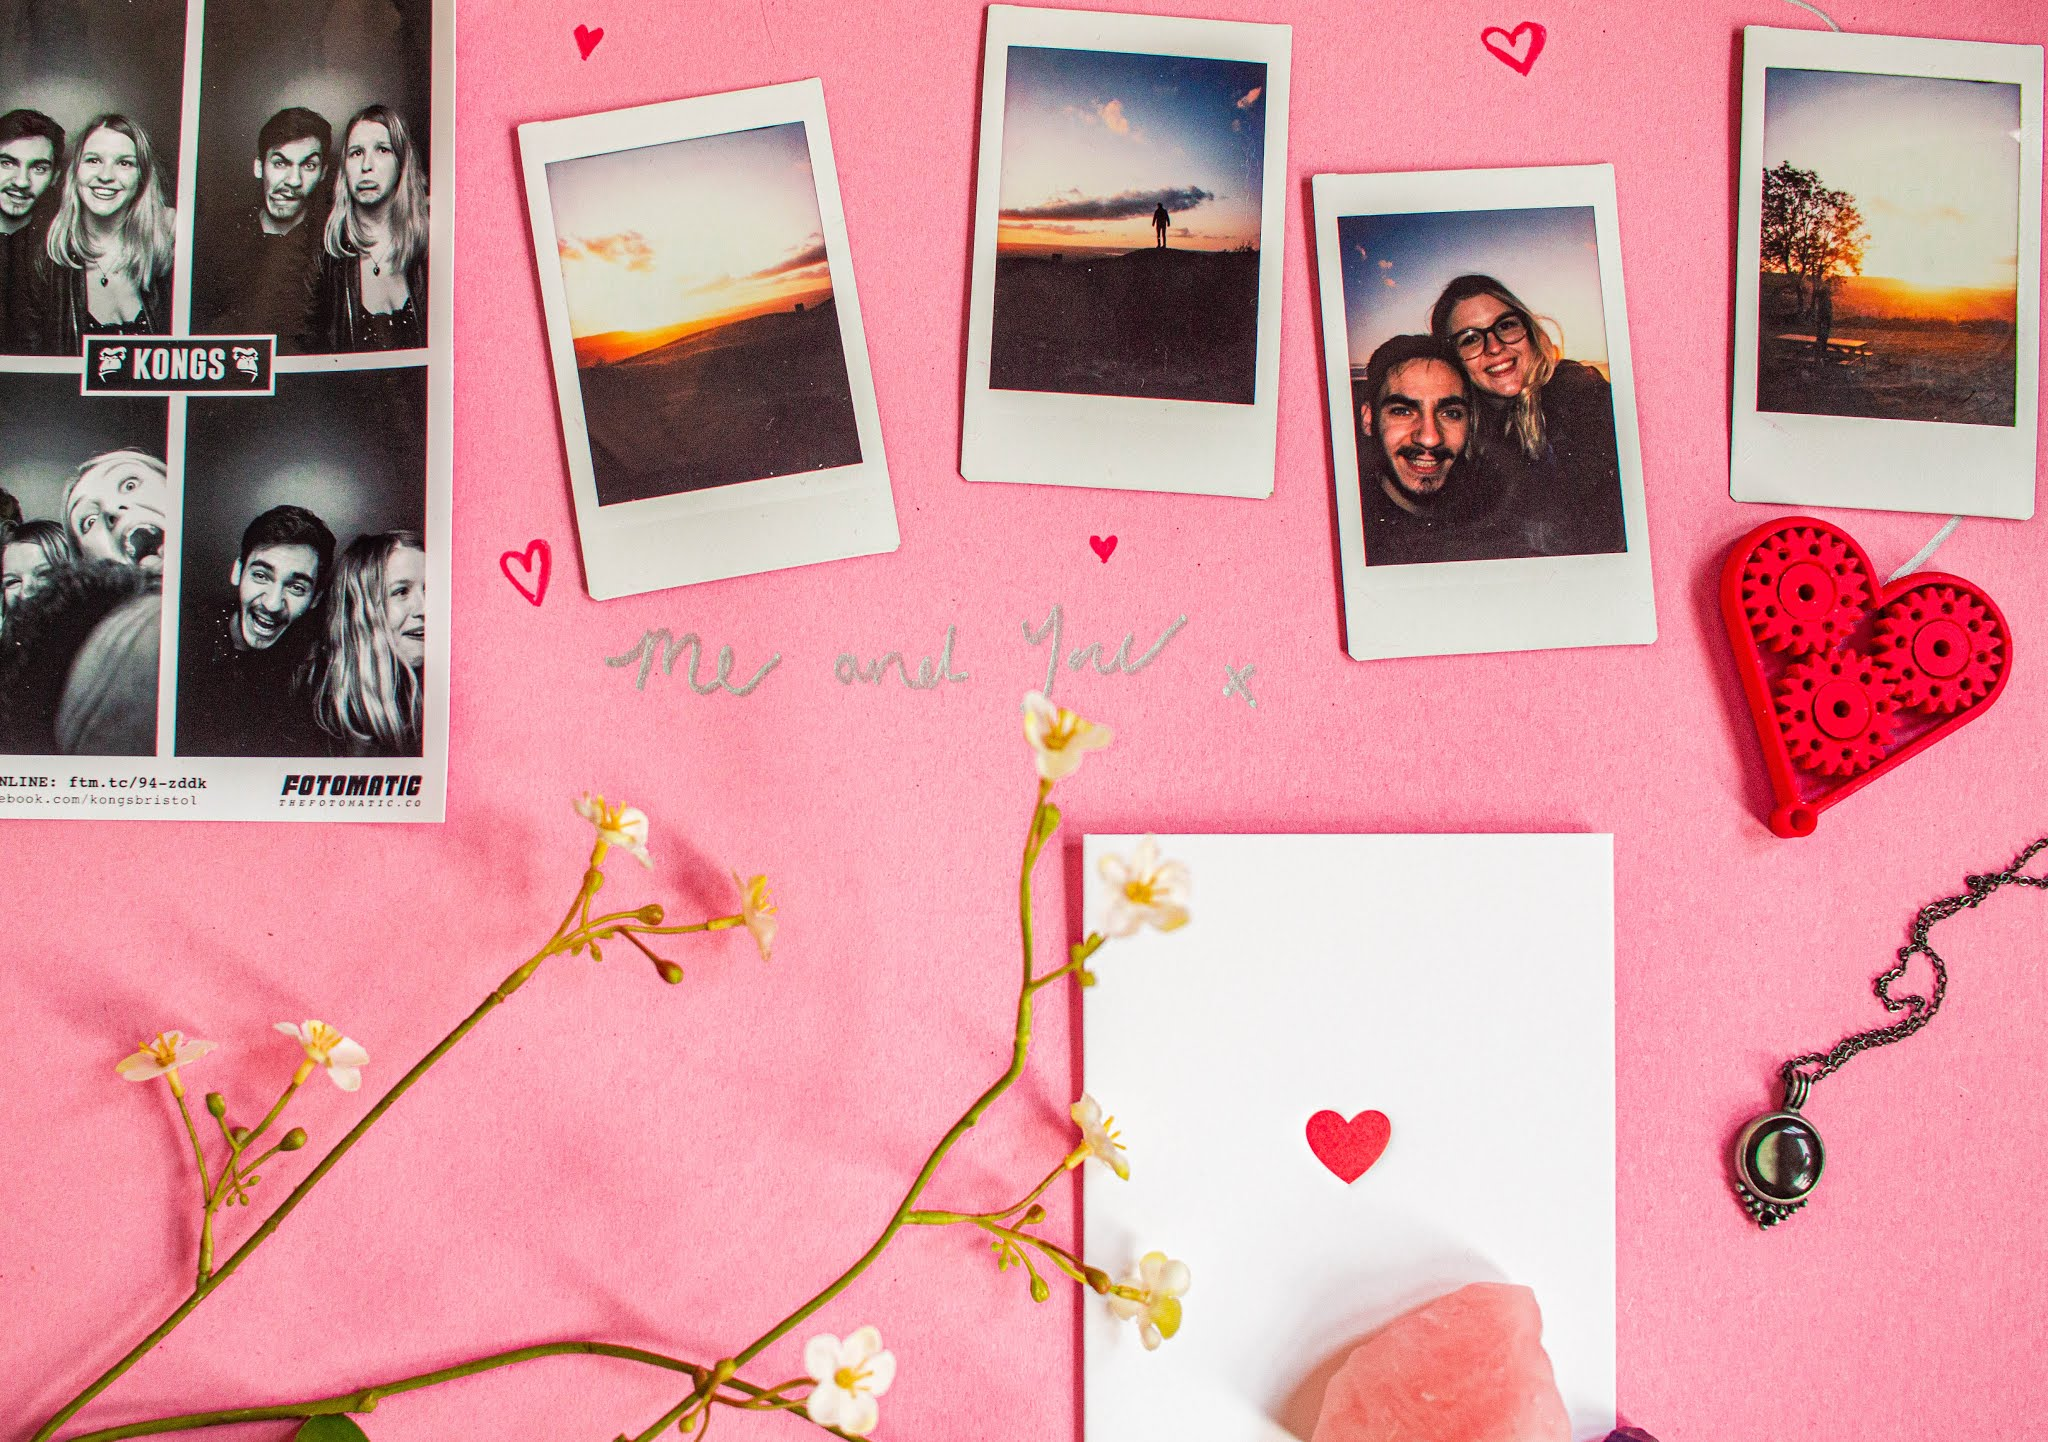 cute, affordable date ideas for valentines day 2020 - instax pictures of couple and sunset and hearts